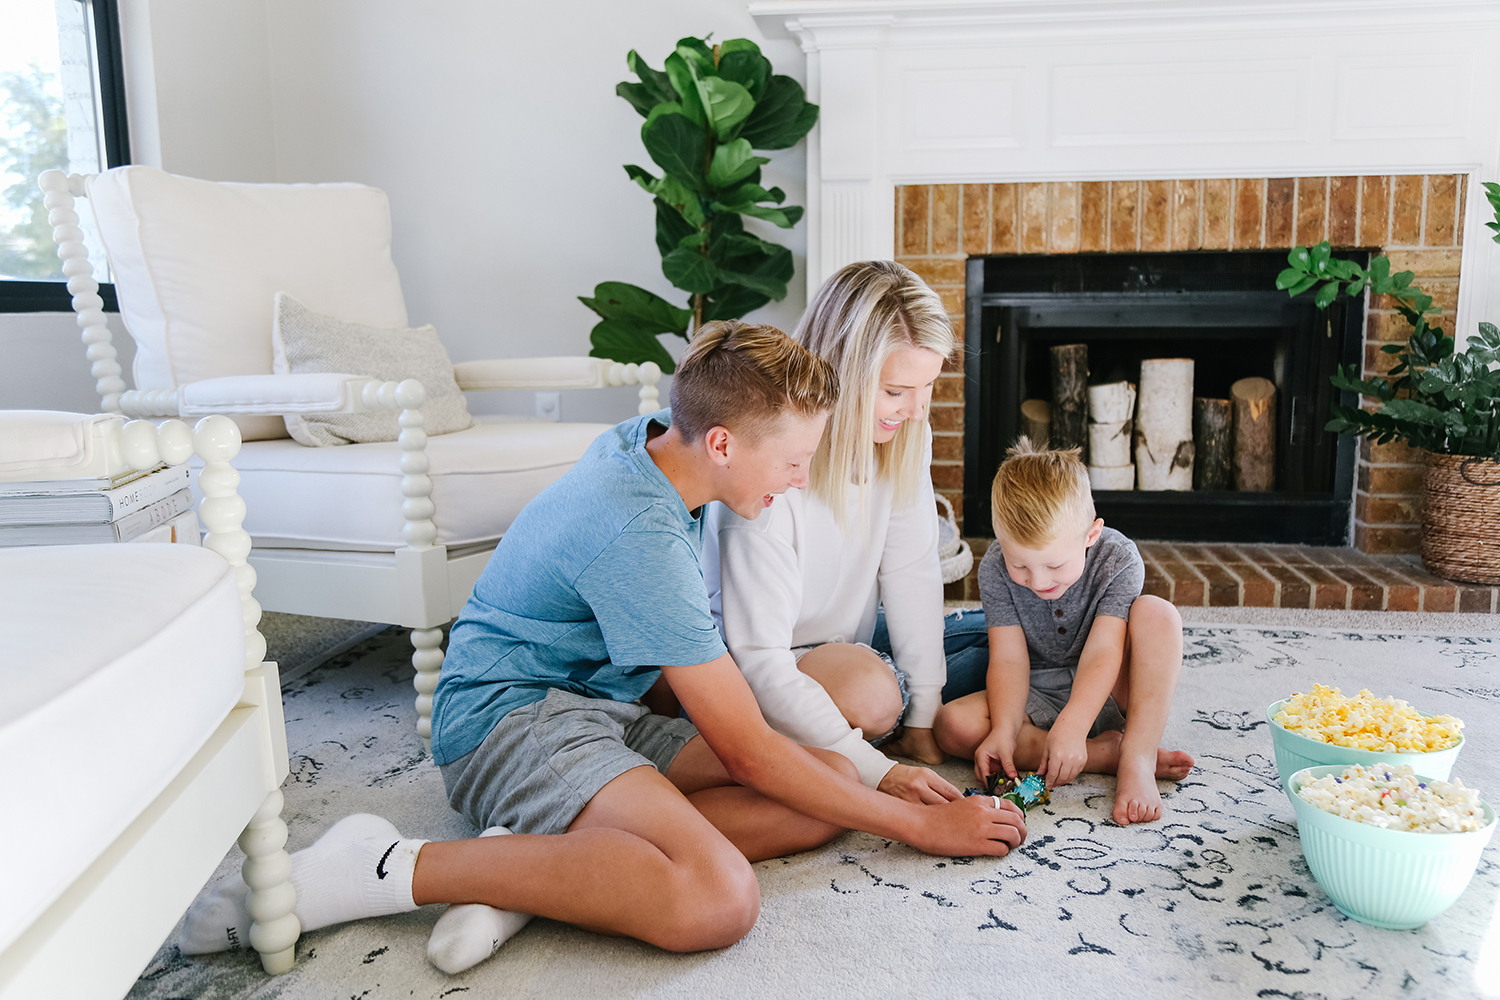 Family Fun Night at Home ideas featured by Utah lifestyle blogger, By Jen Rose